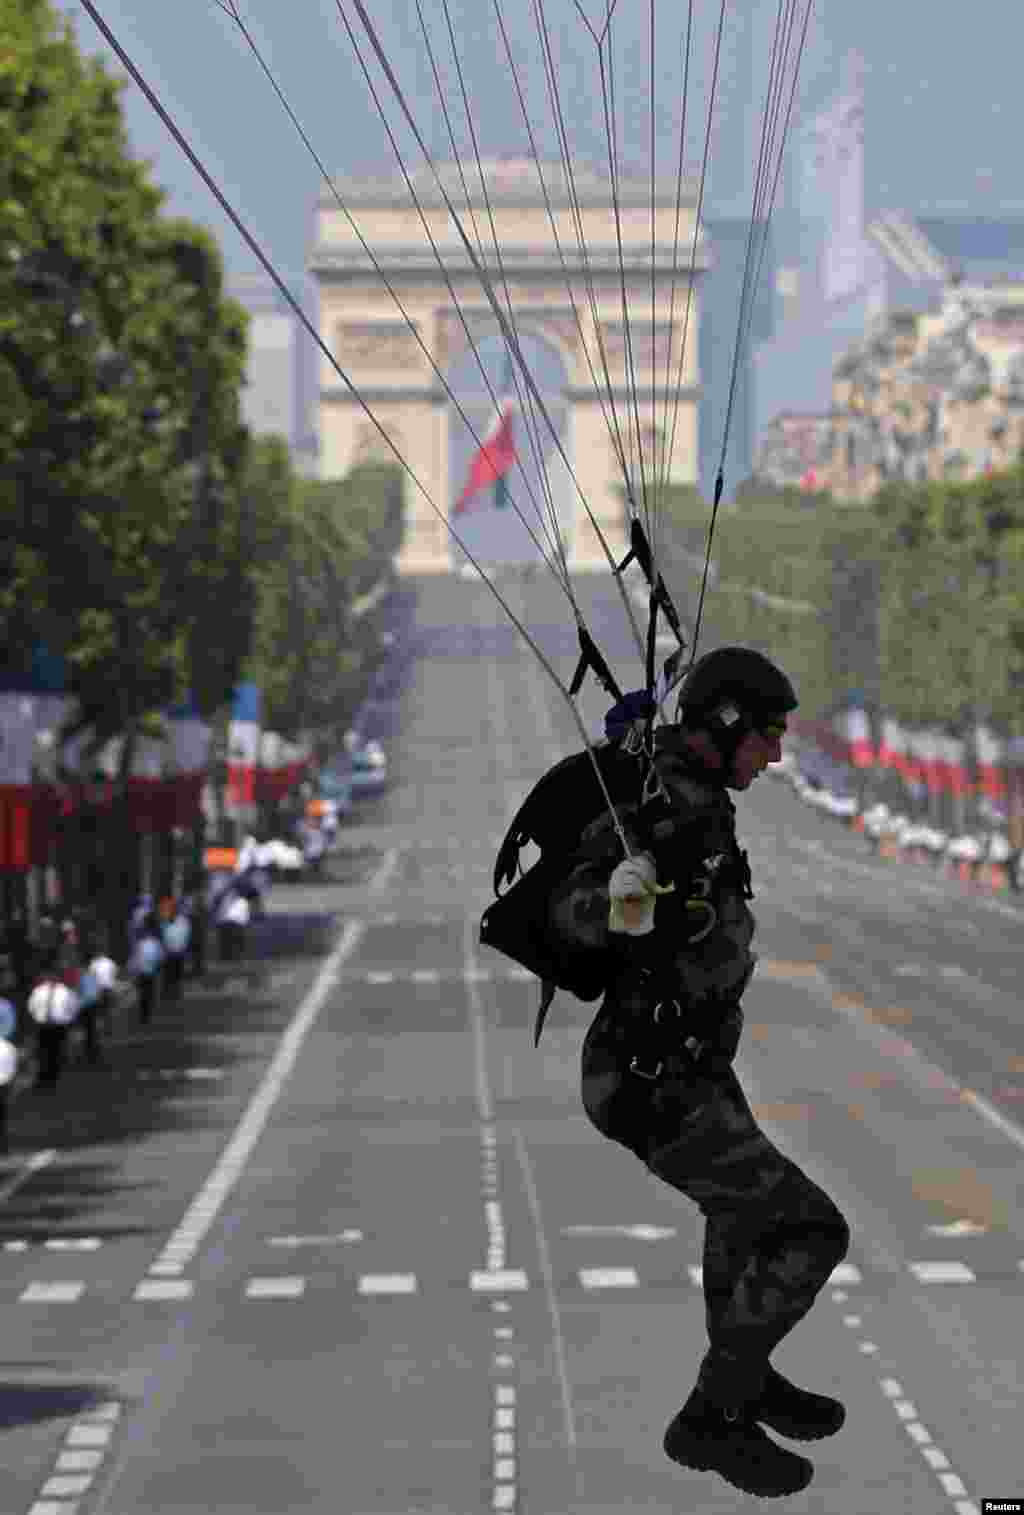 A parachutist lands in front of the reviewing stand on the Place de la Concorde during the traditional Bastille Day parade in Paris, July 14, 2013.